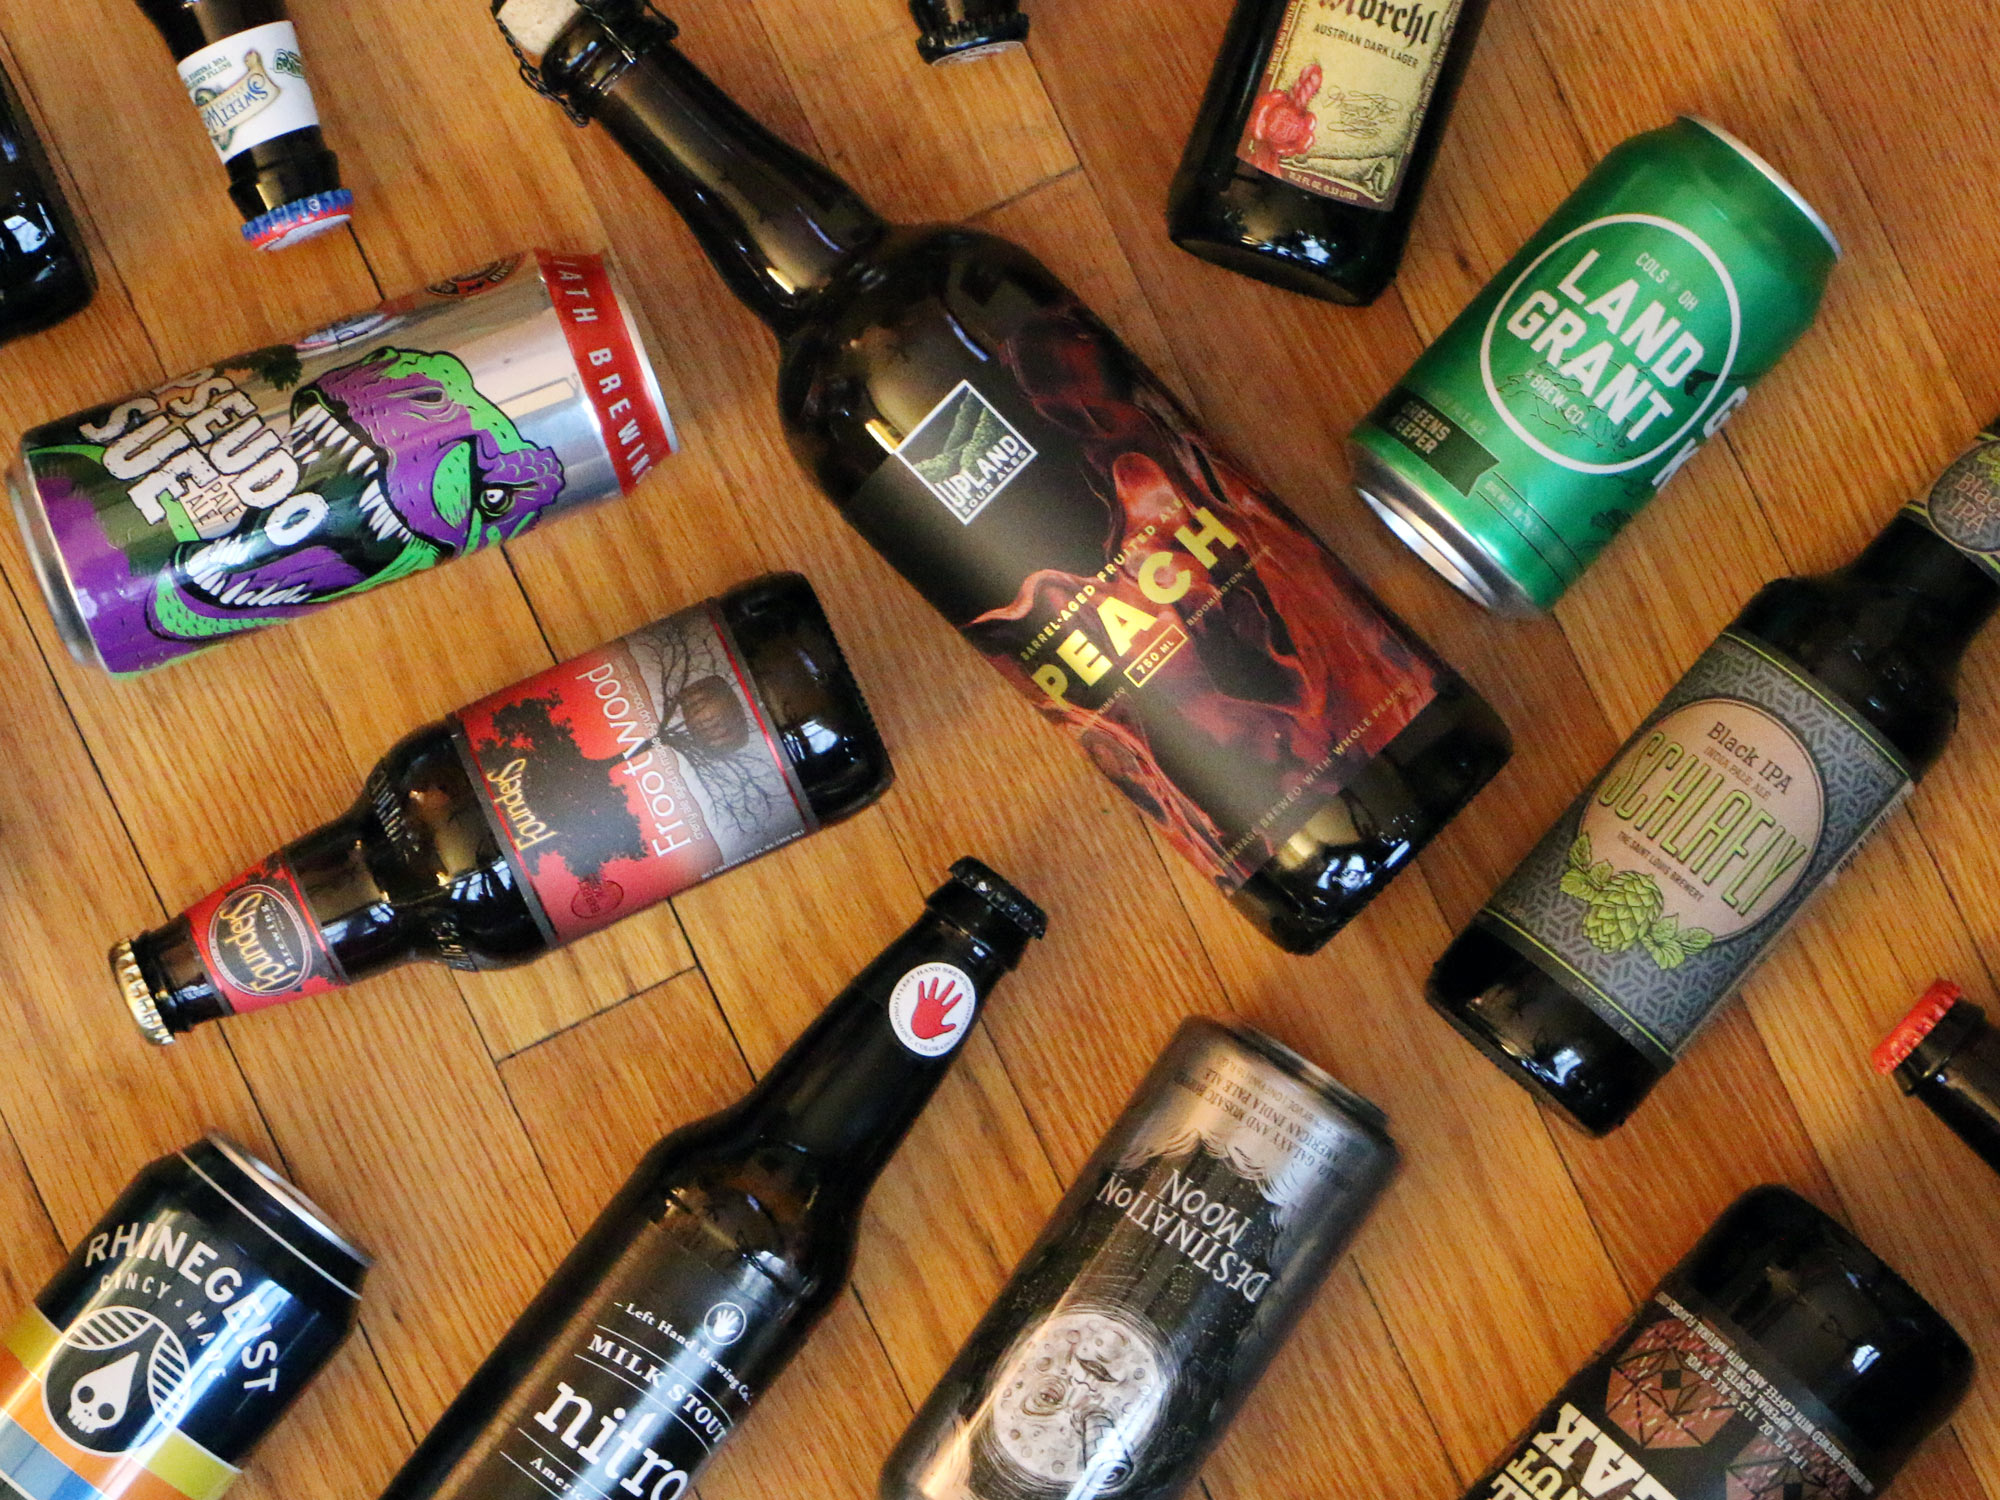 The Hop Reviews Vol. 10: A Monthly Beer Review